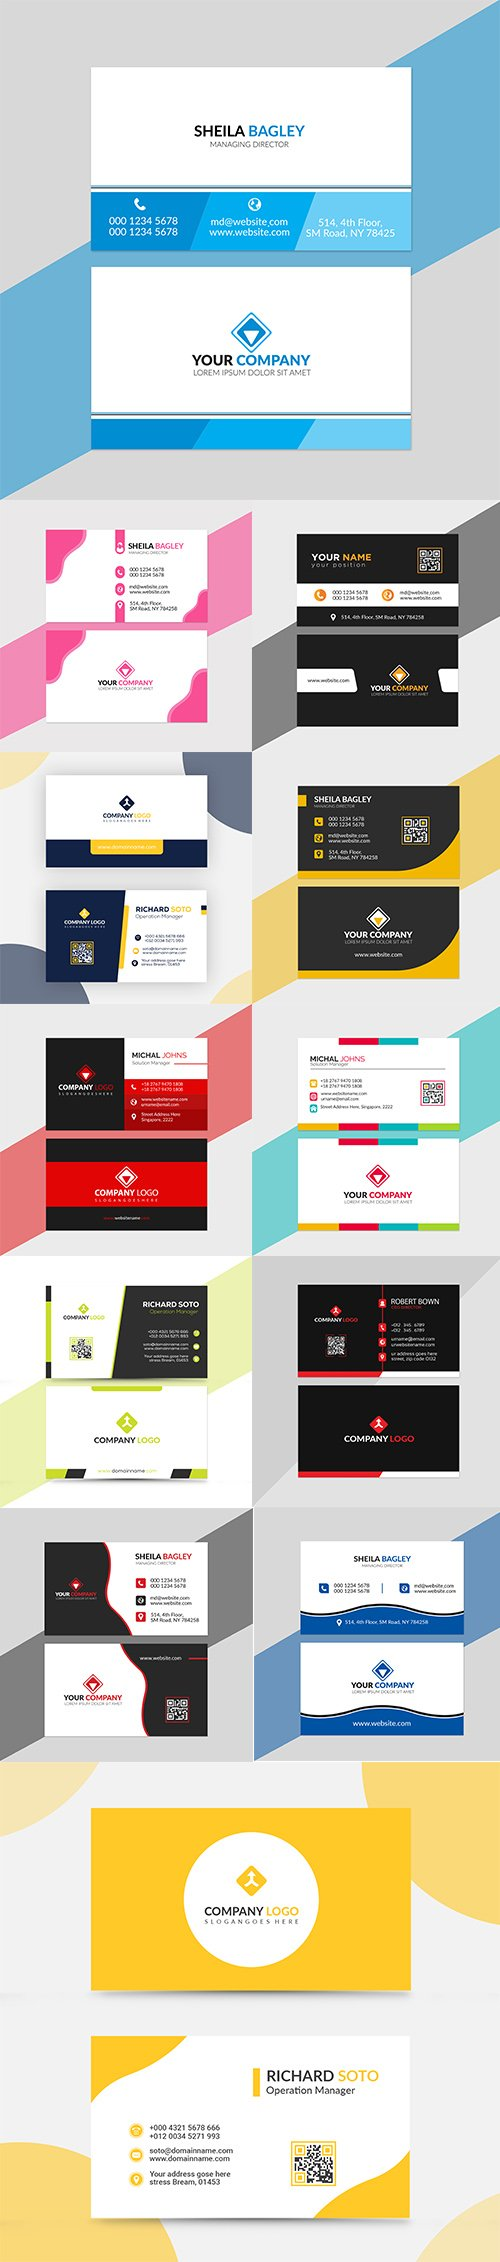 Colorful Business Card PSD and EPS Template Set